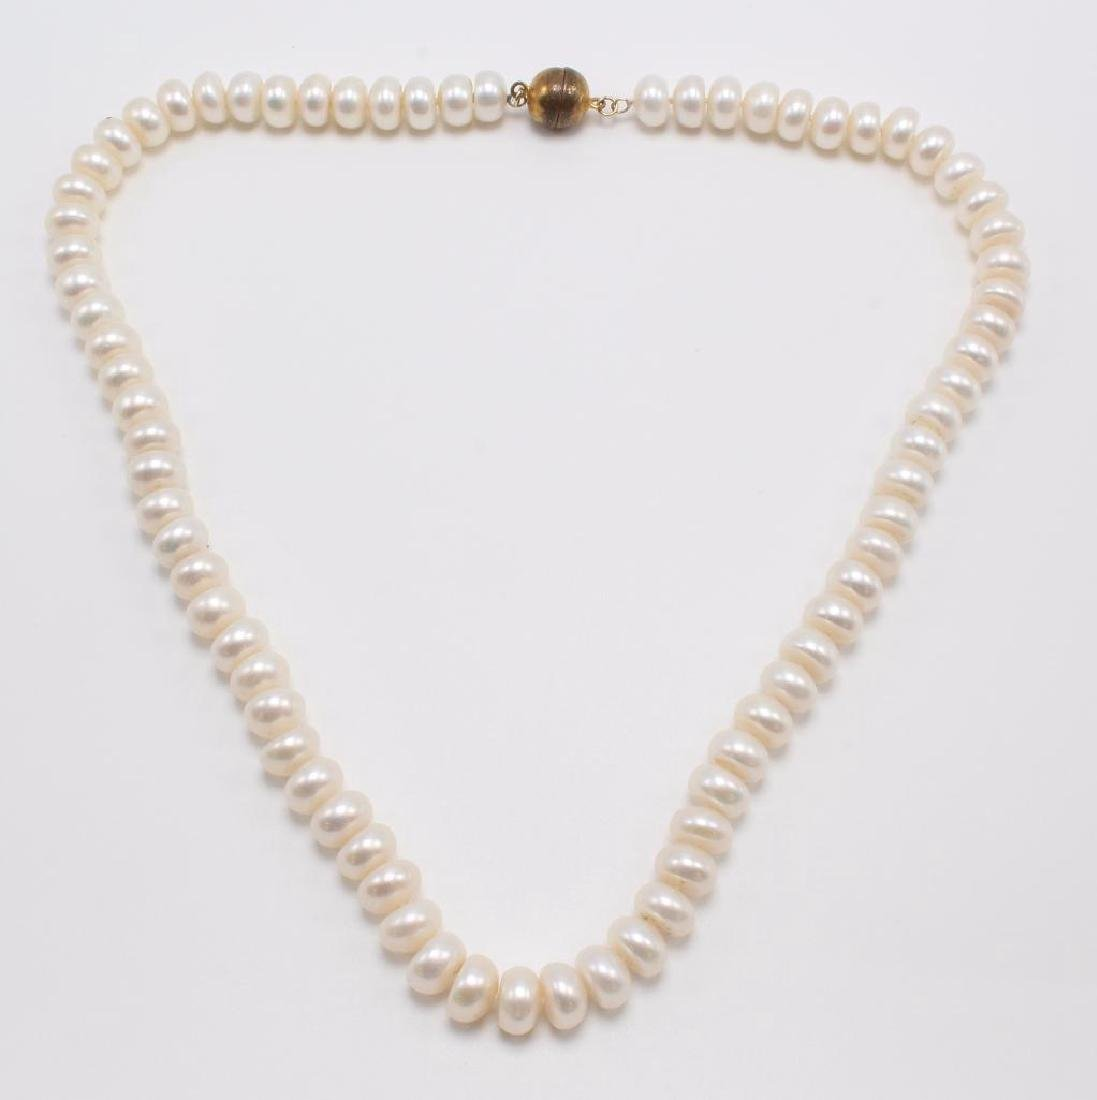 NECKLACE. BUTTON PEARL